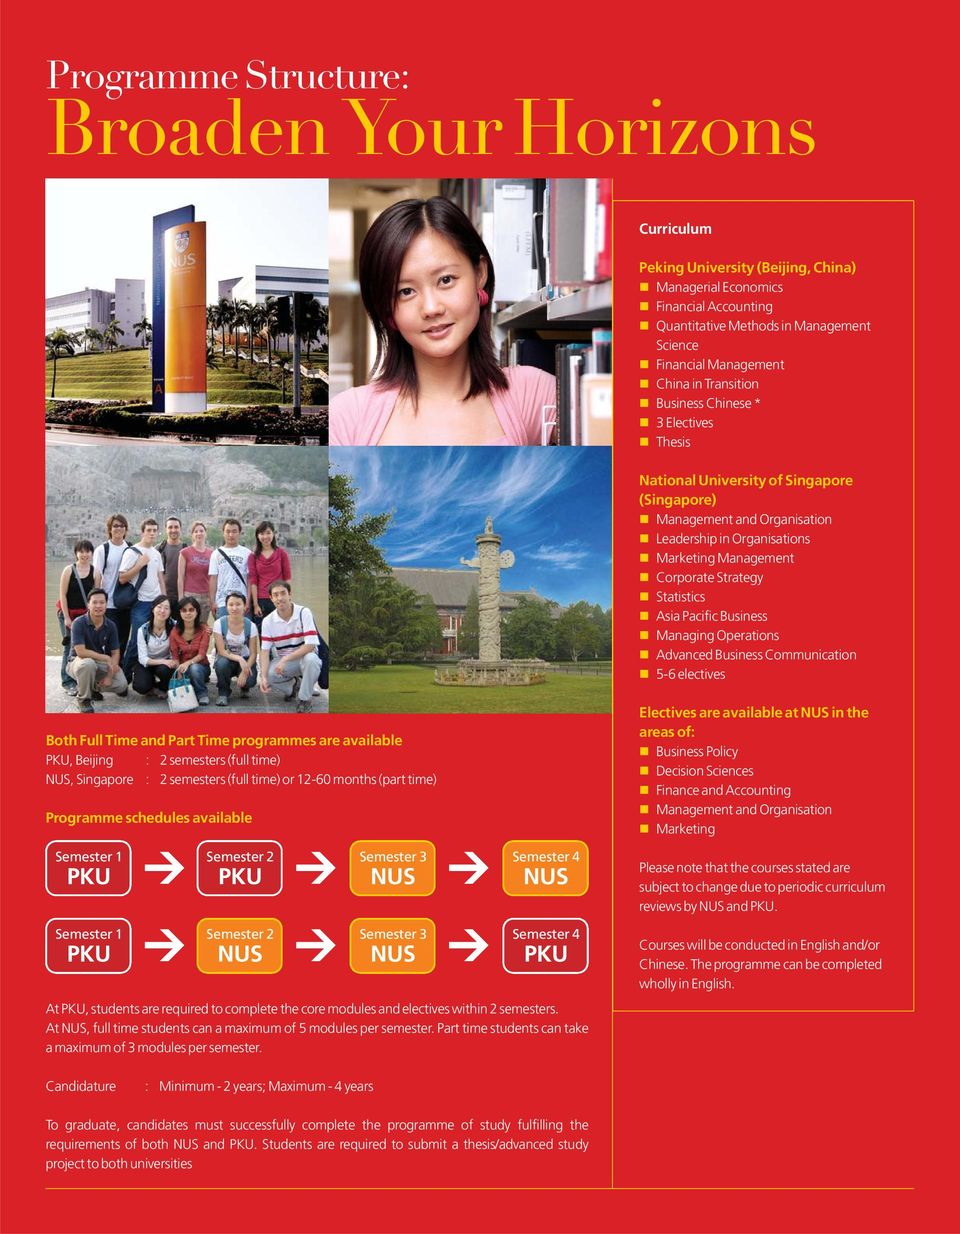 Statistics Asia Pacific Business Managing Operations Advanced Business Communication 5-6 electives Both Full Time and Part Time programmes are available PKU, Beijing : 2 semesters (full time) NUS,